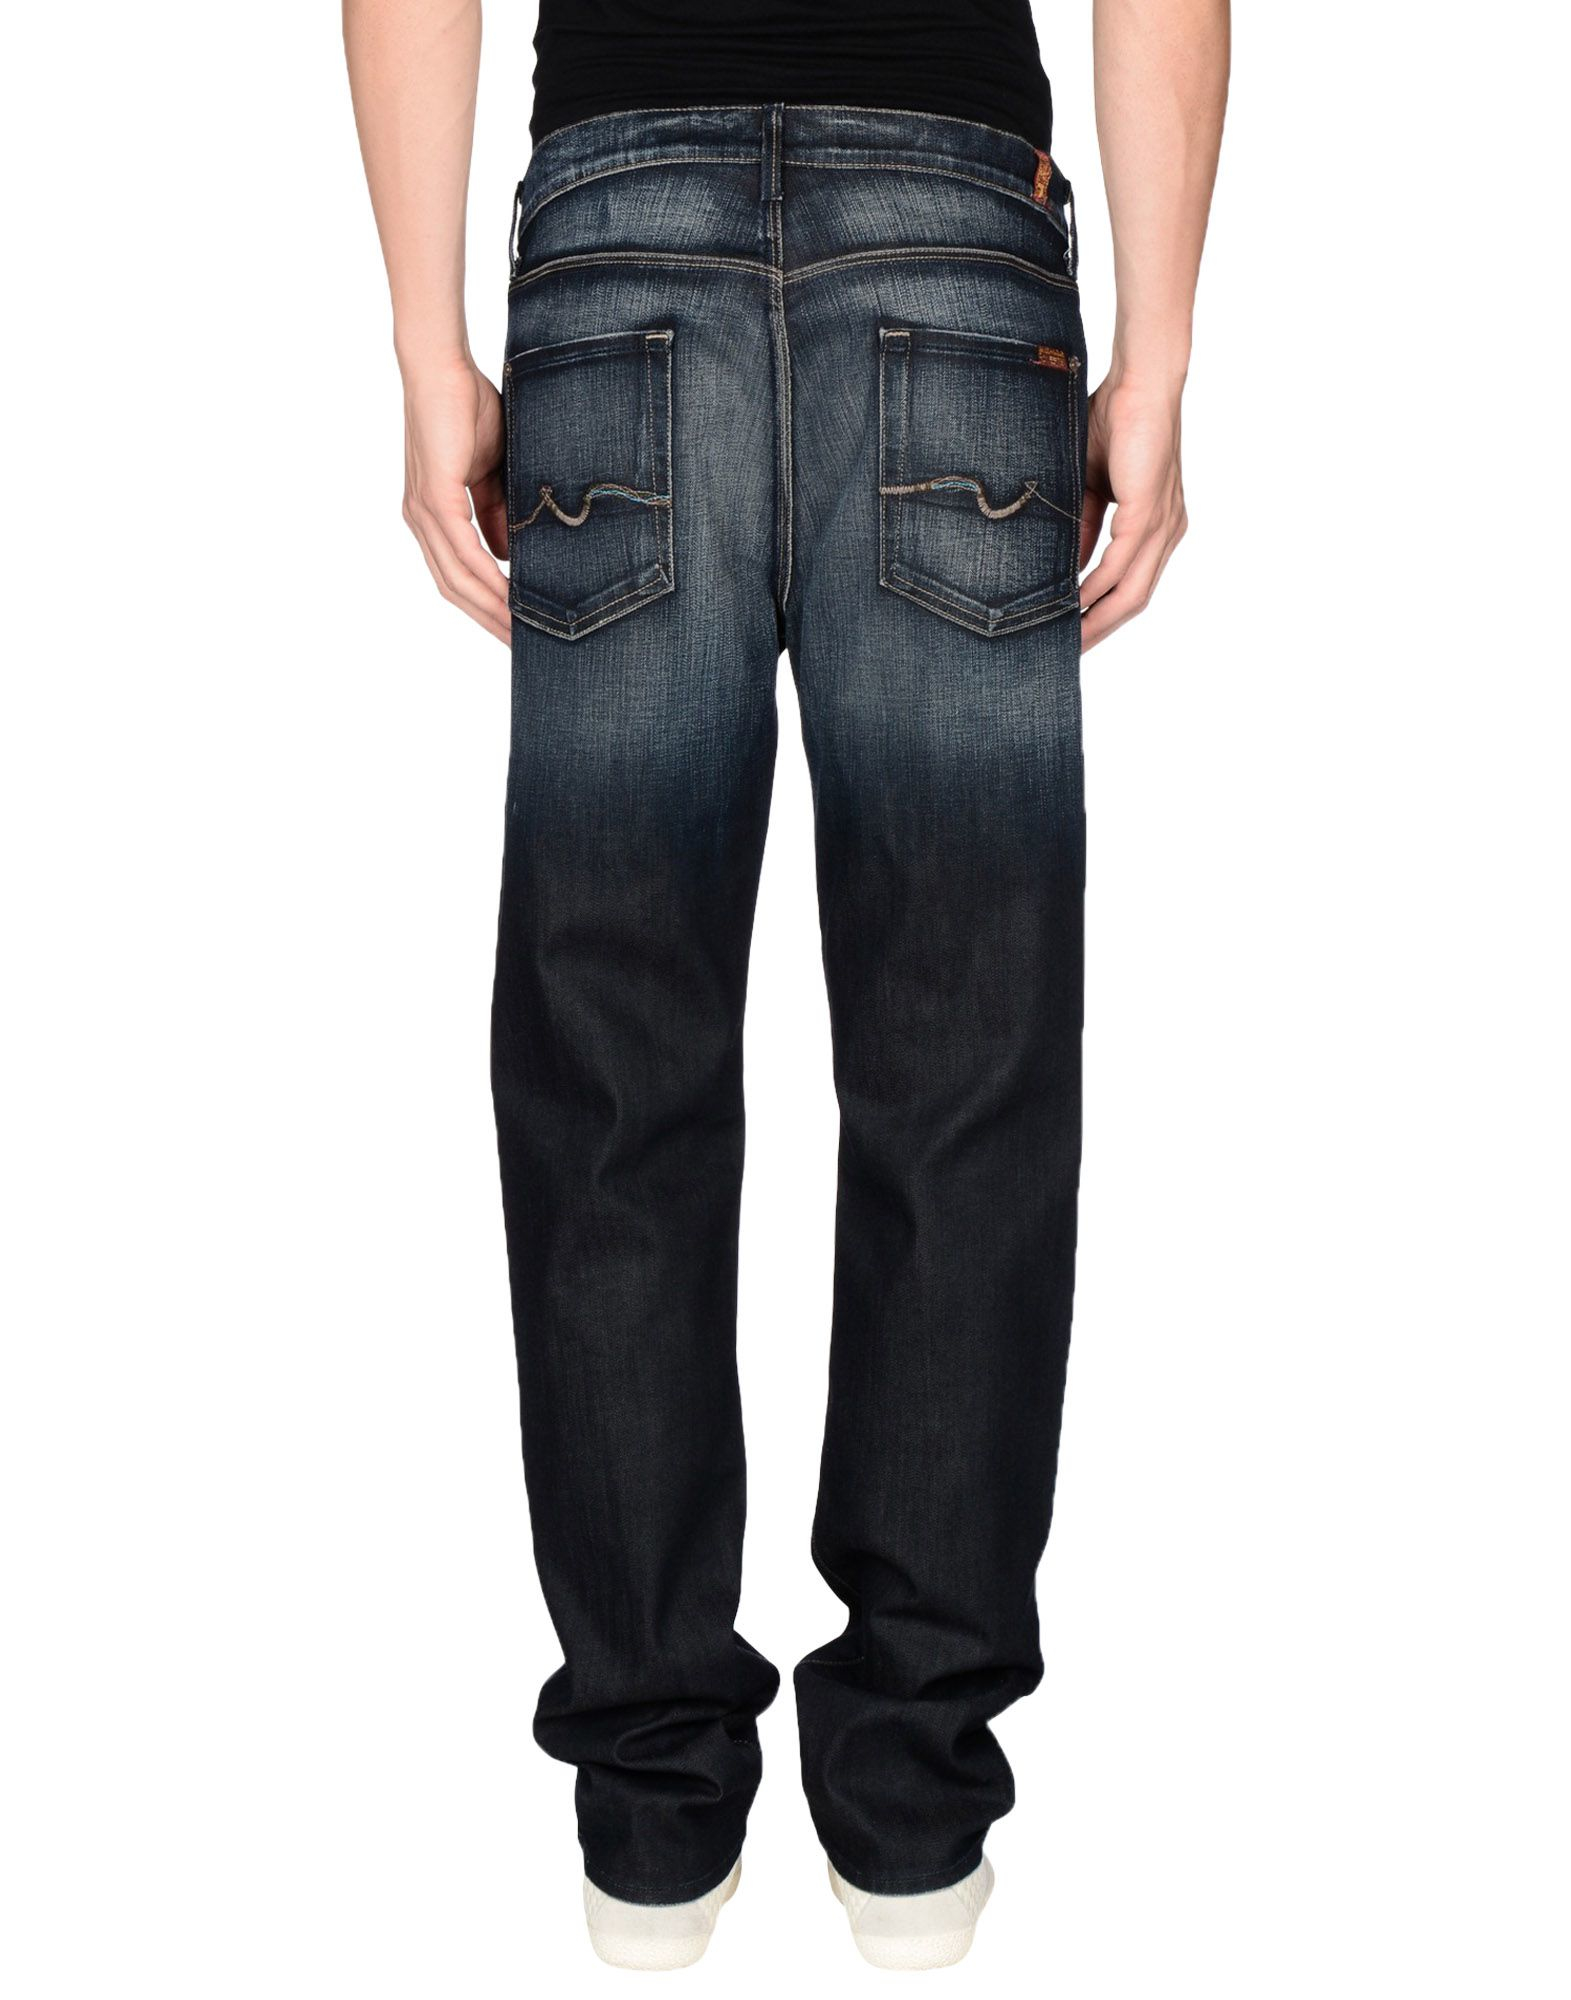 7 for all mankind denim trousers in blue for men lyst. Black Bedroom Furniture Sets. Home Design Ideas